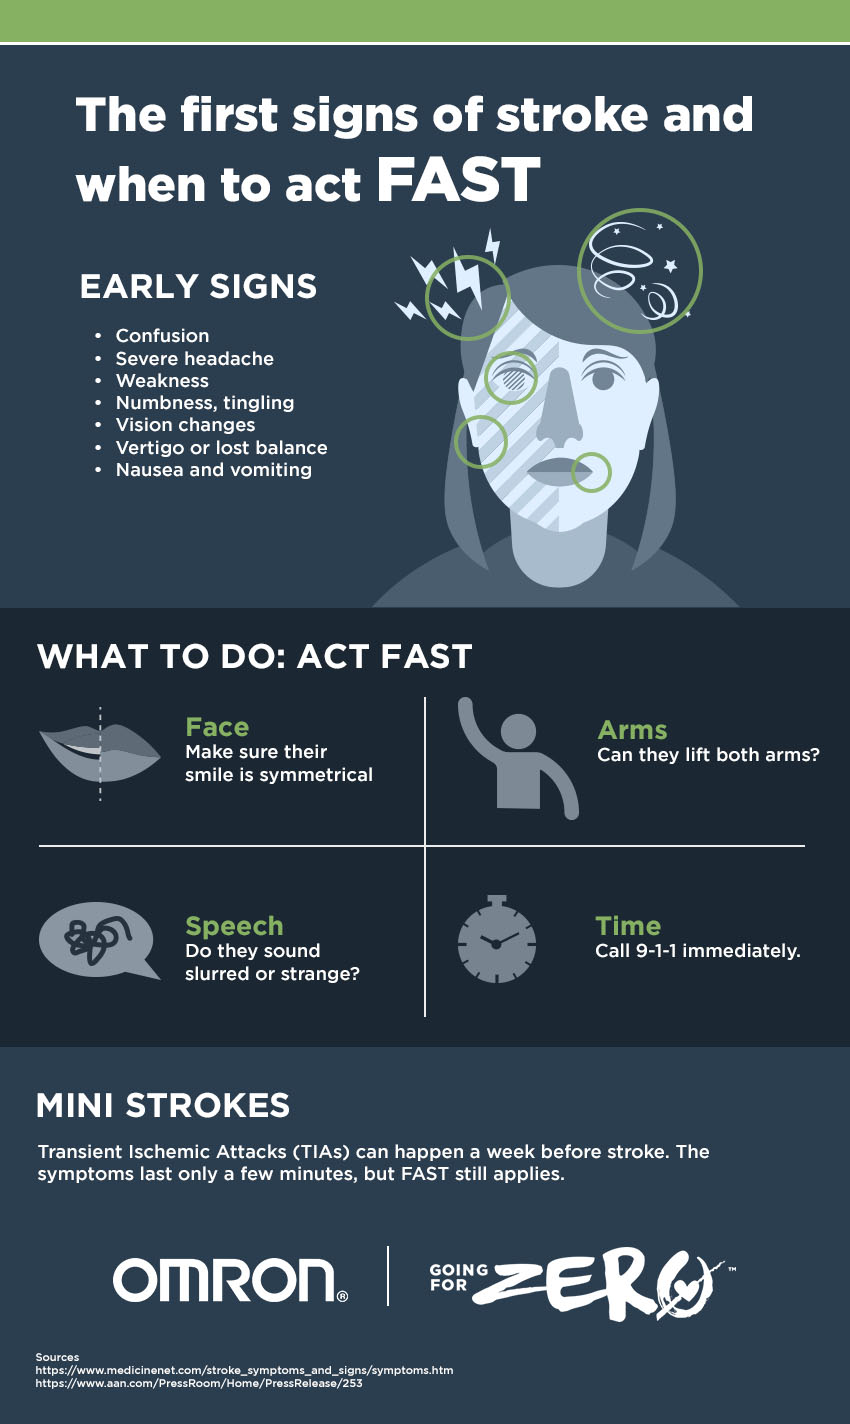 the first signs of stroke and when to act fast